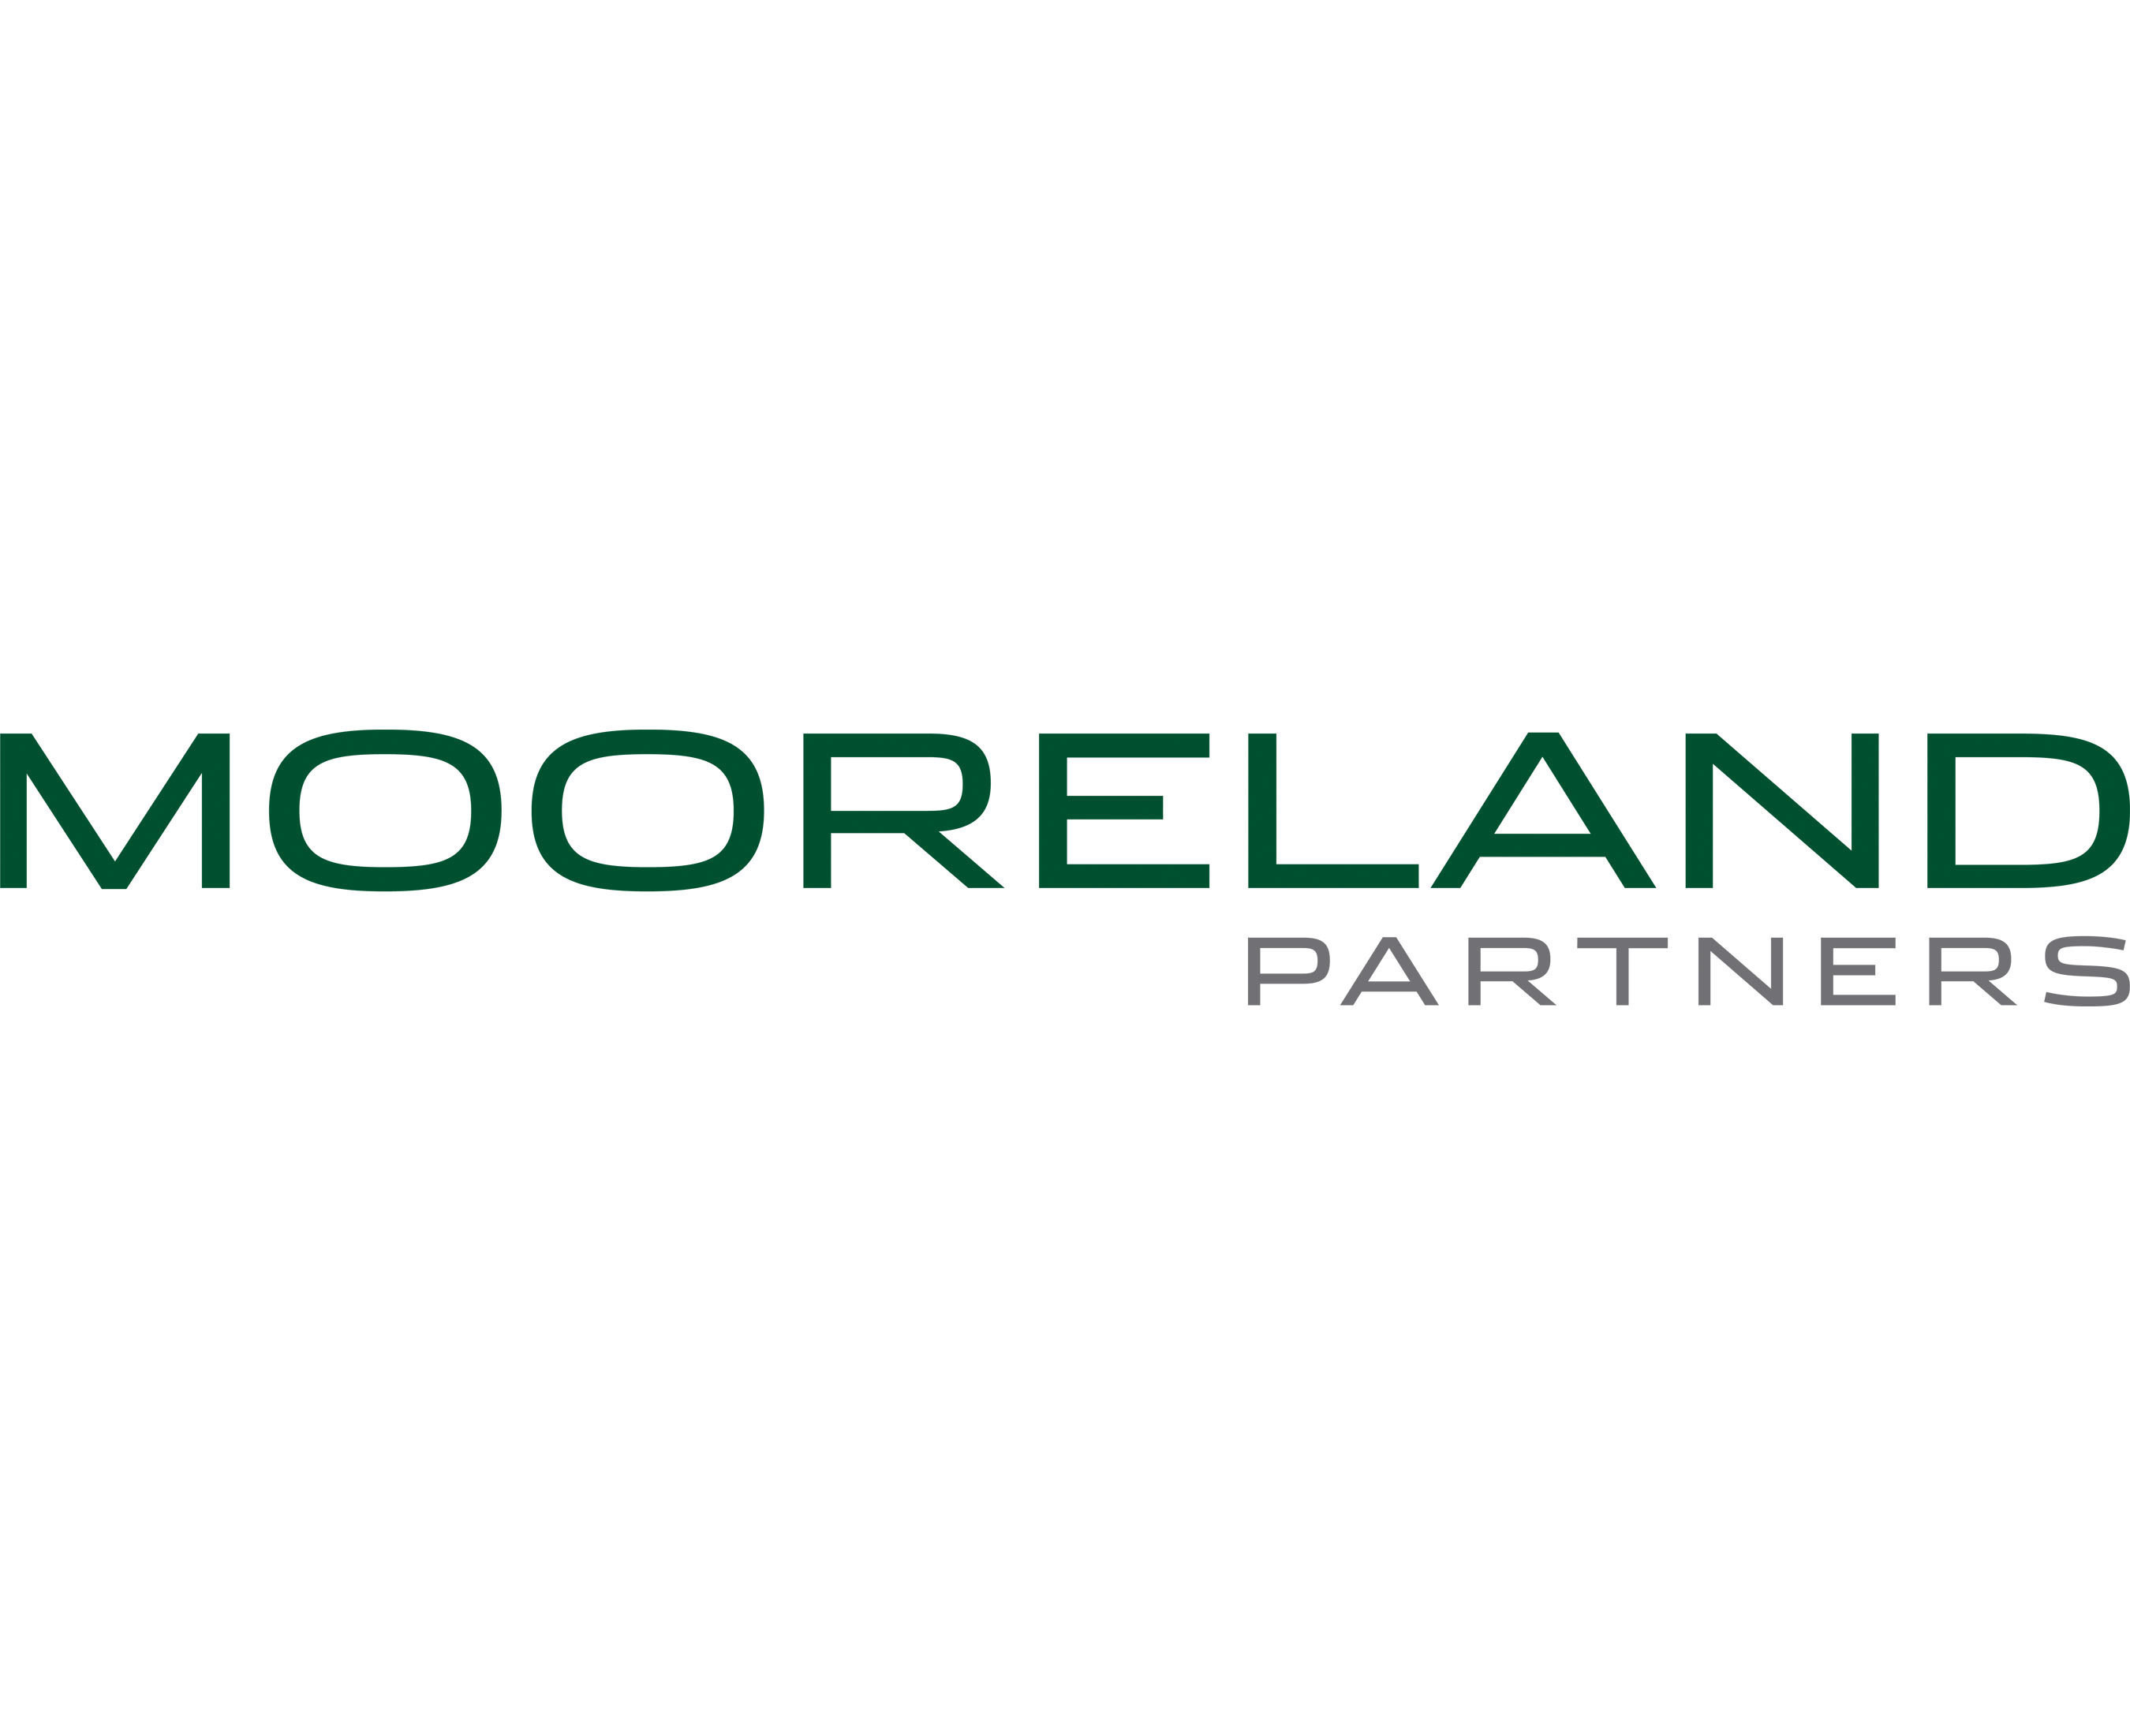 Mooreland Partners advises Blis on $25 million growth financing from Endeit Capital, Unilever Ventures, Beringea and Silicon Valley Bank